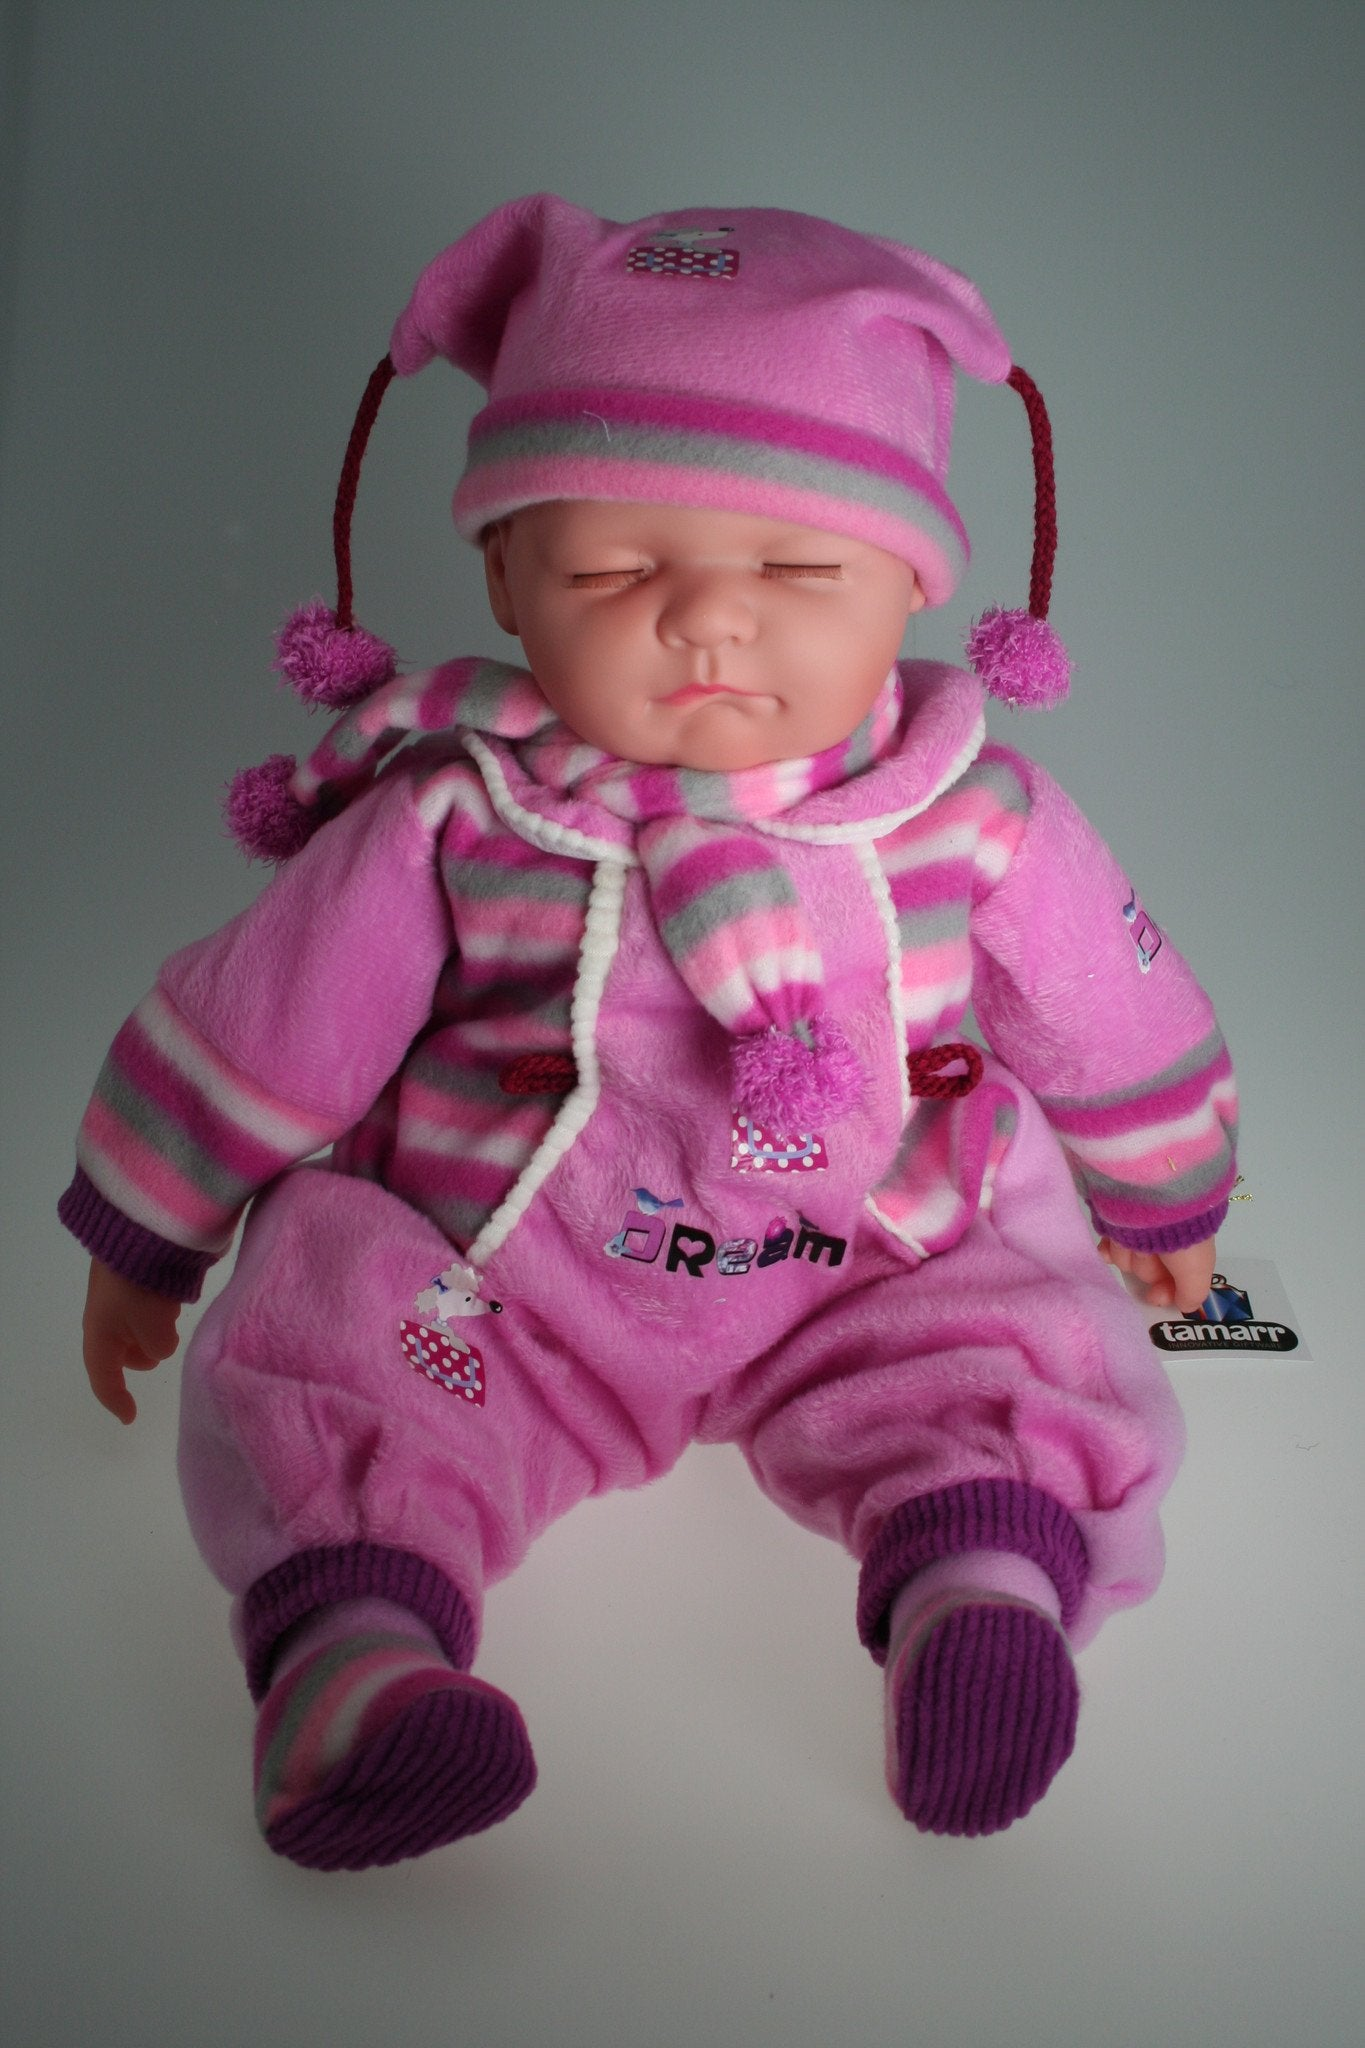 HA314 - Sleeping Baby Doll: Eve - Tamarr Imports Innovative Giftware Pty Ltd